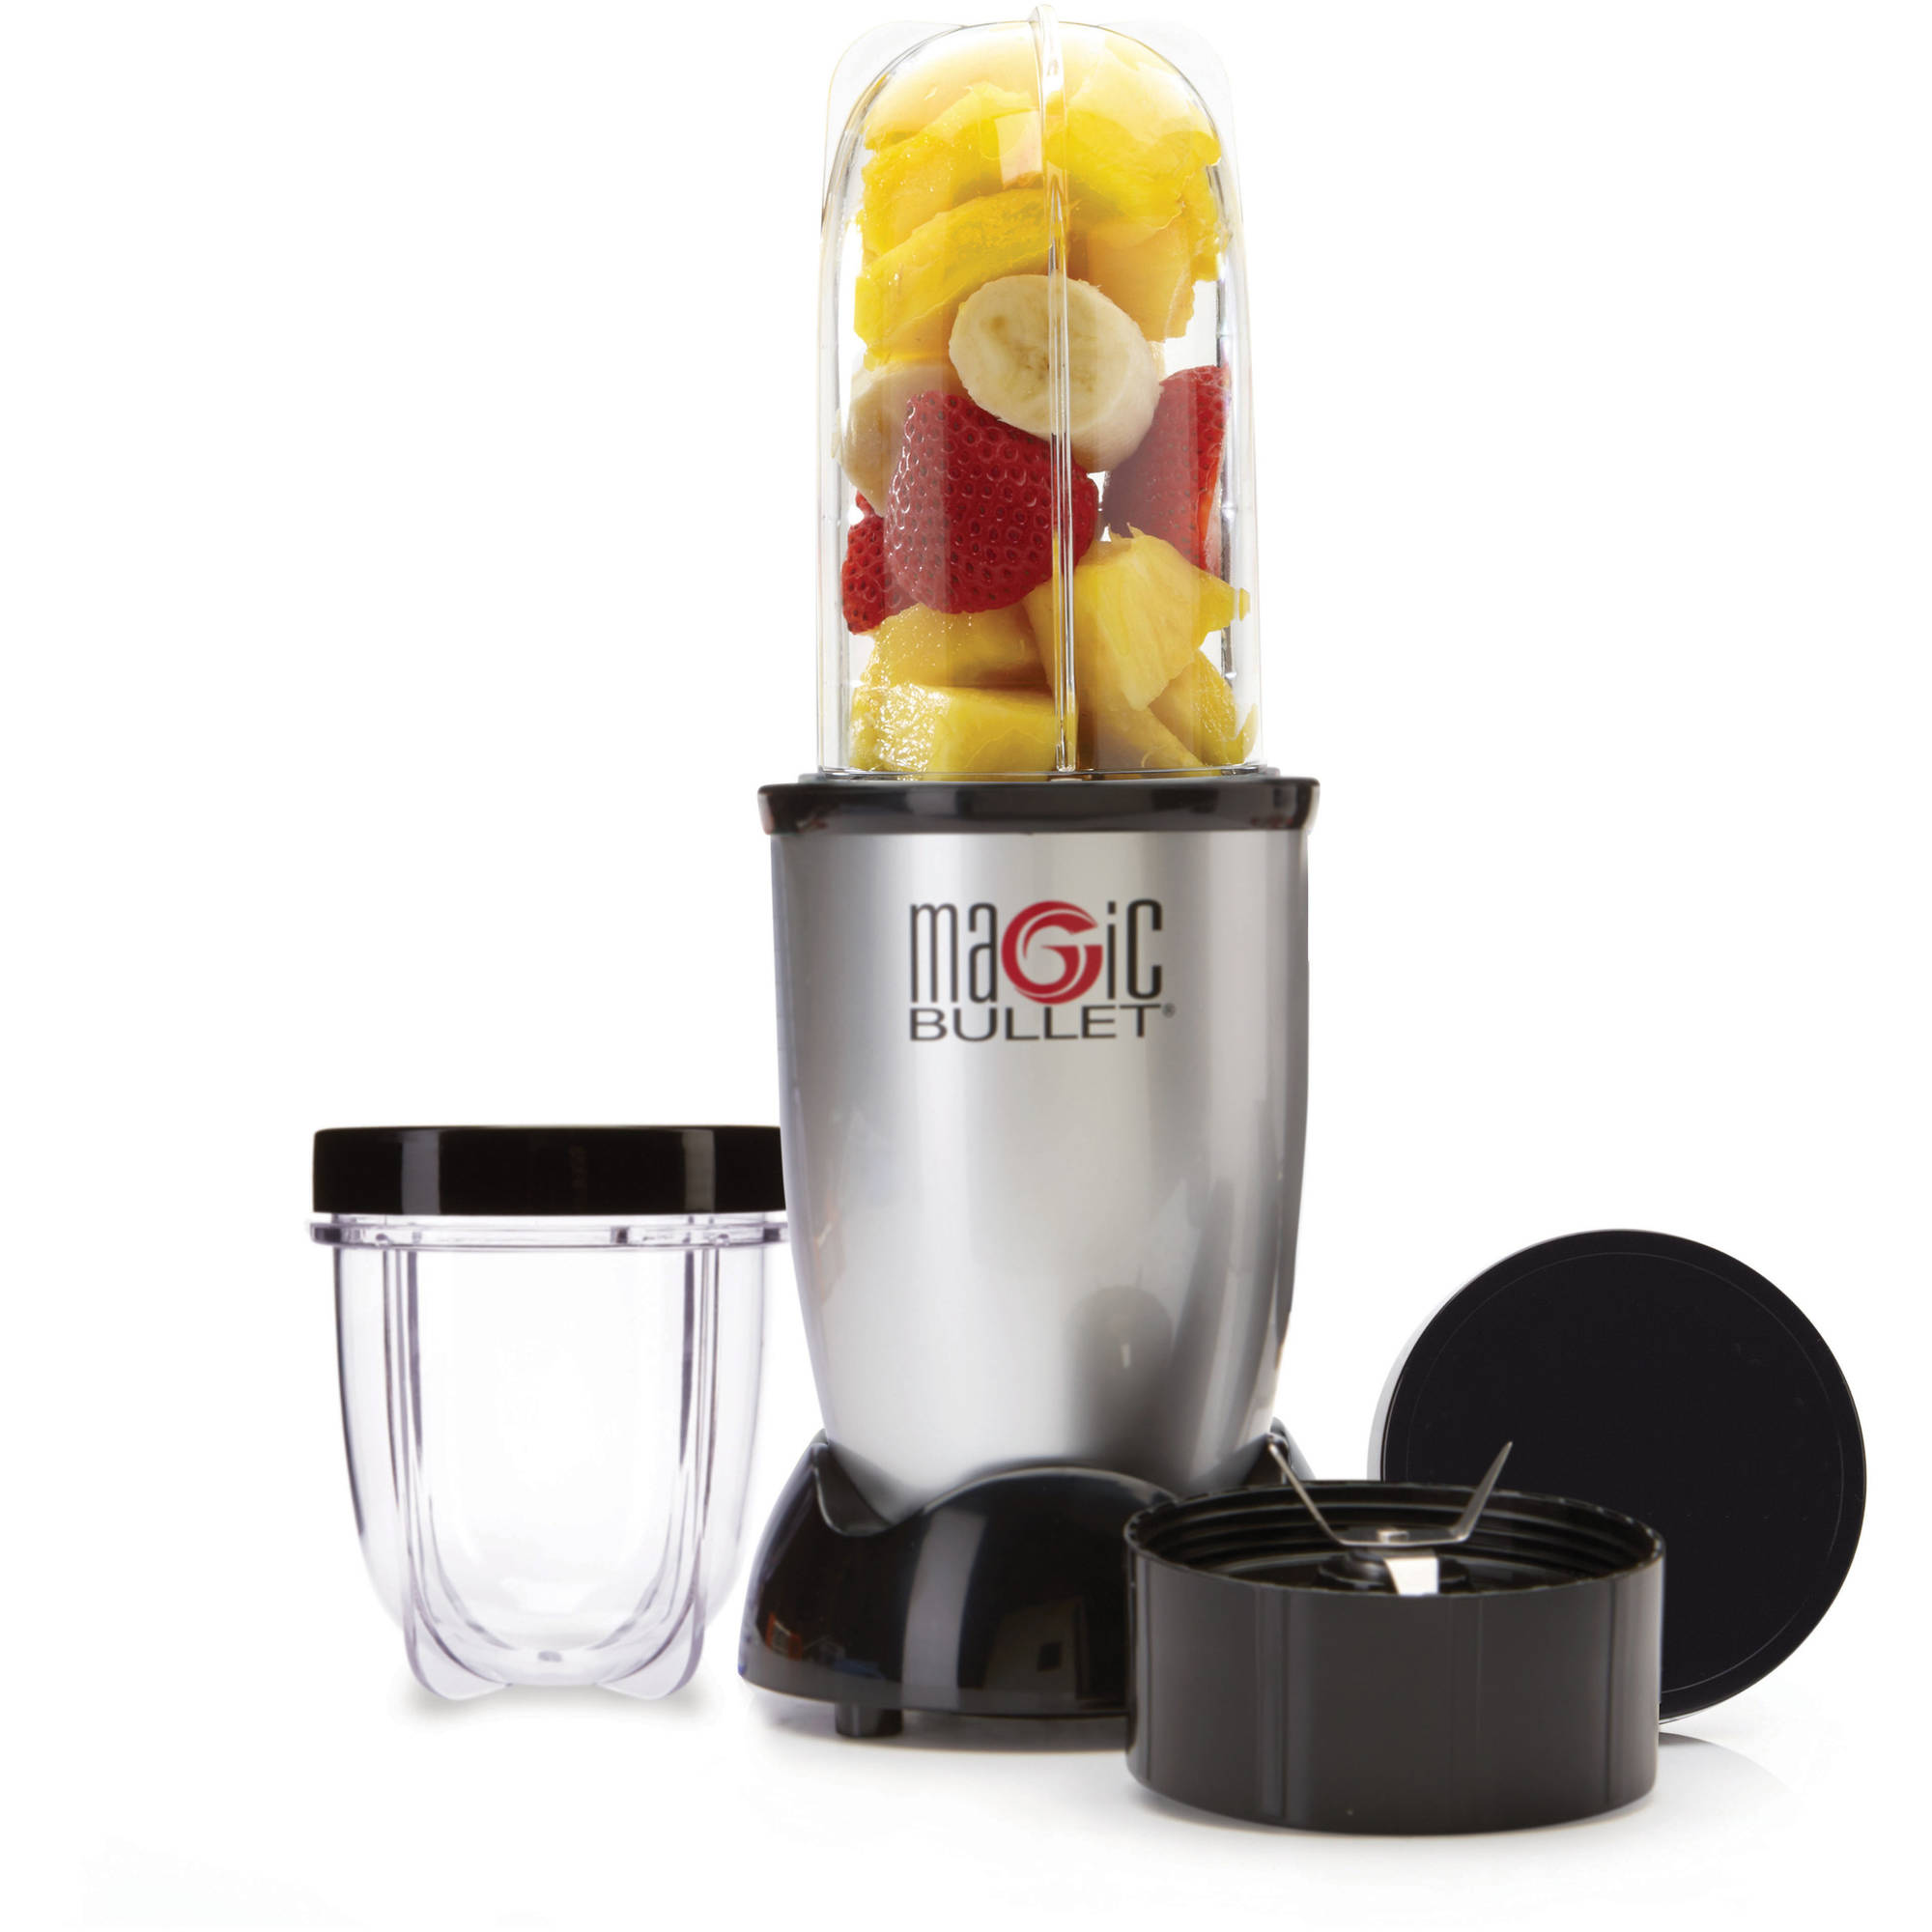 Magic Bullet 7-pc Set Only $19.92 (reg $40)!